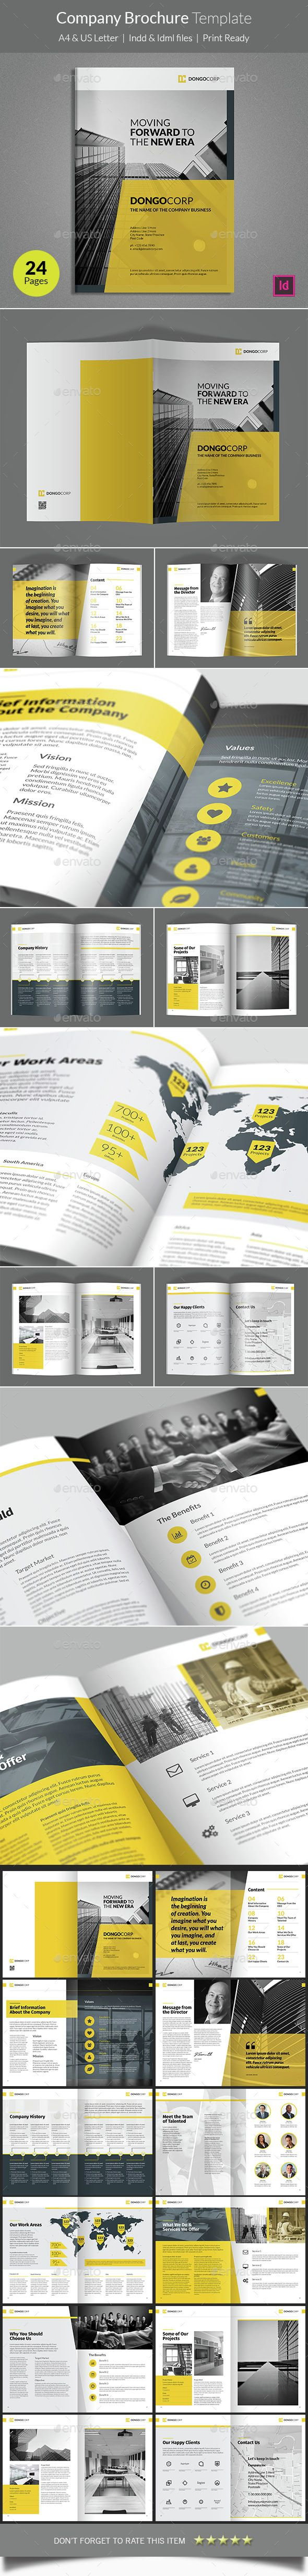 Company Brochure Template - #Corporate #Brochures | Download http://graphicriver.net/item/company-brochure-template/15143040?ref=sinzo